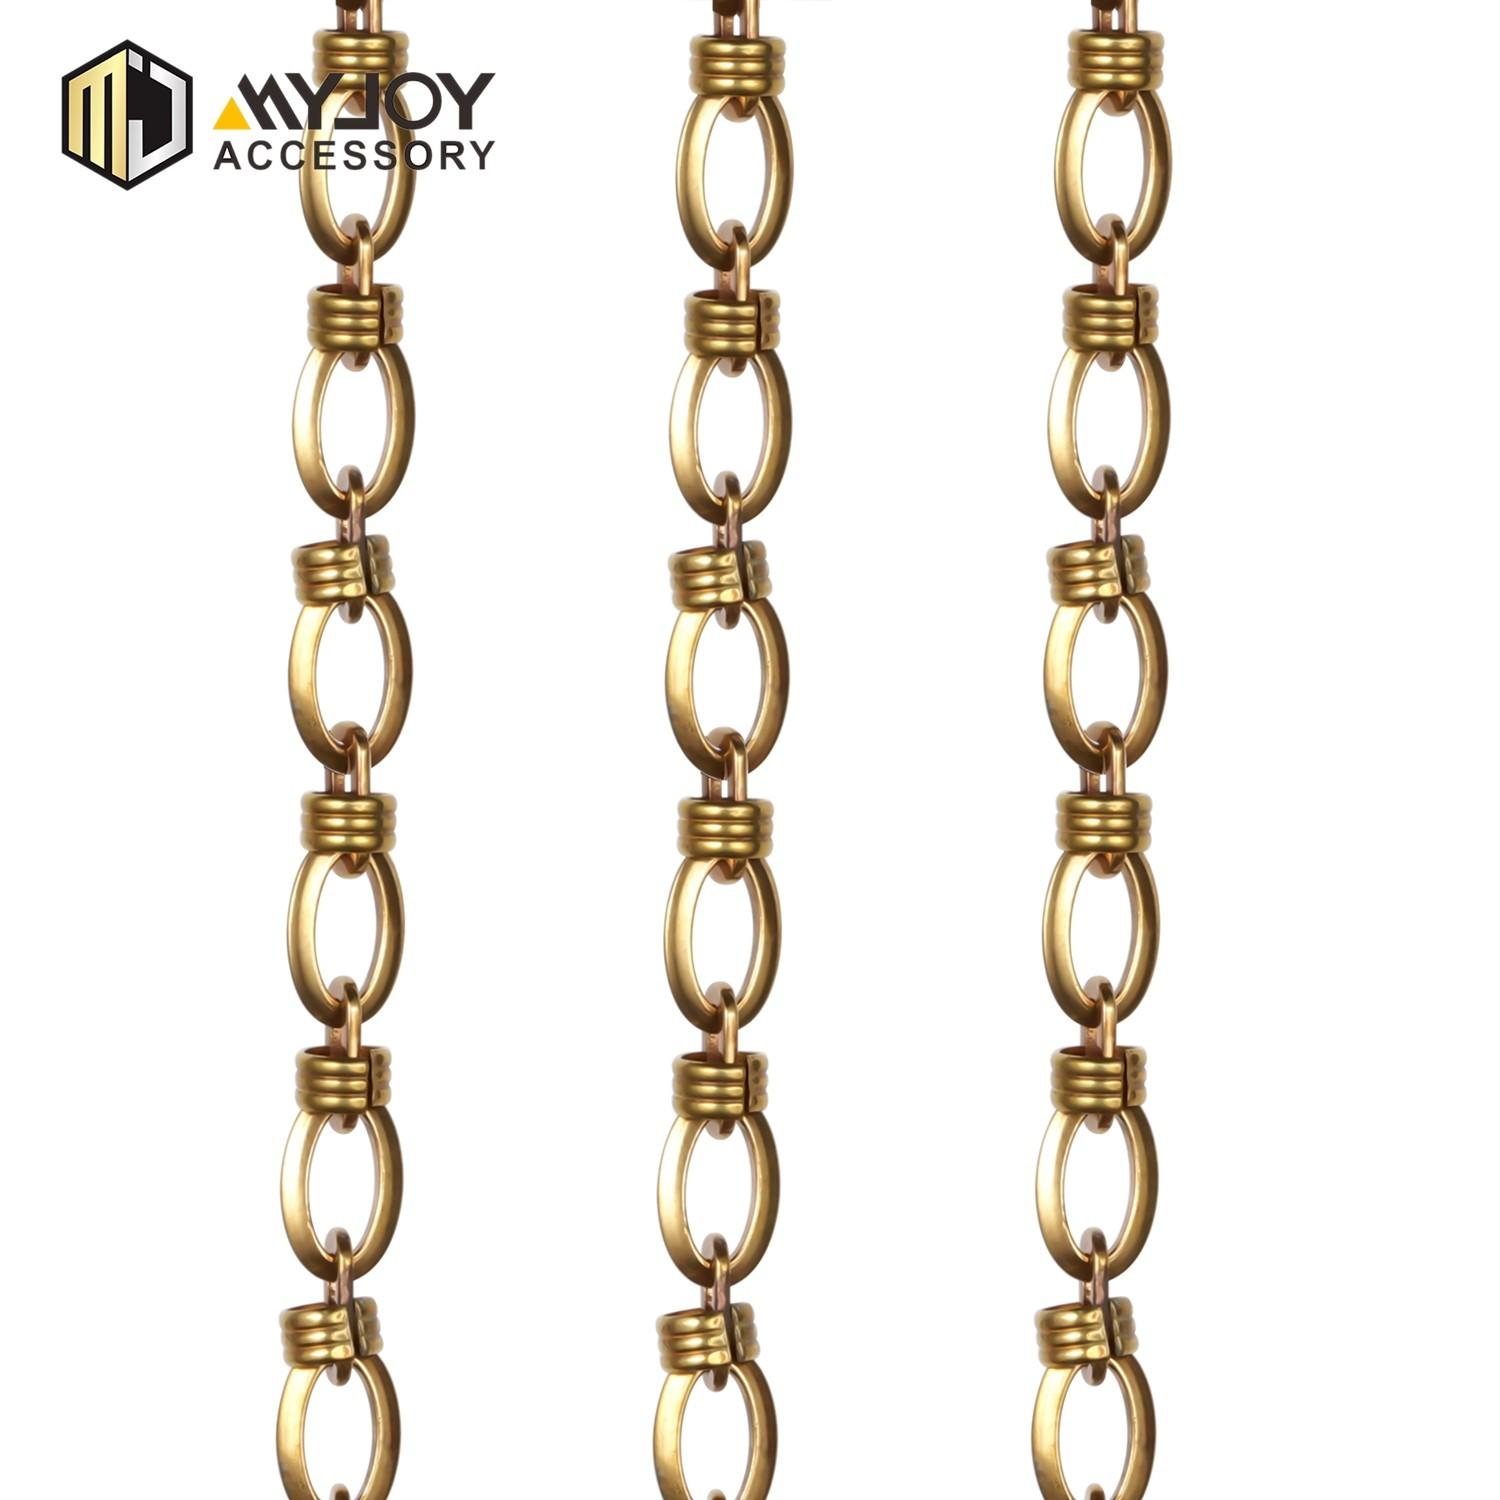 stable bag chain chain suppliers for bags-2